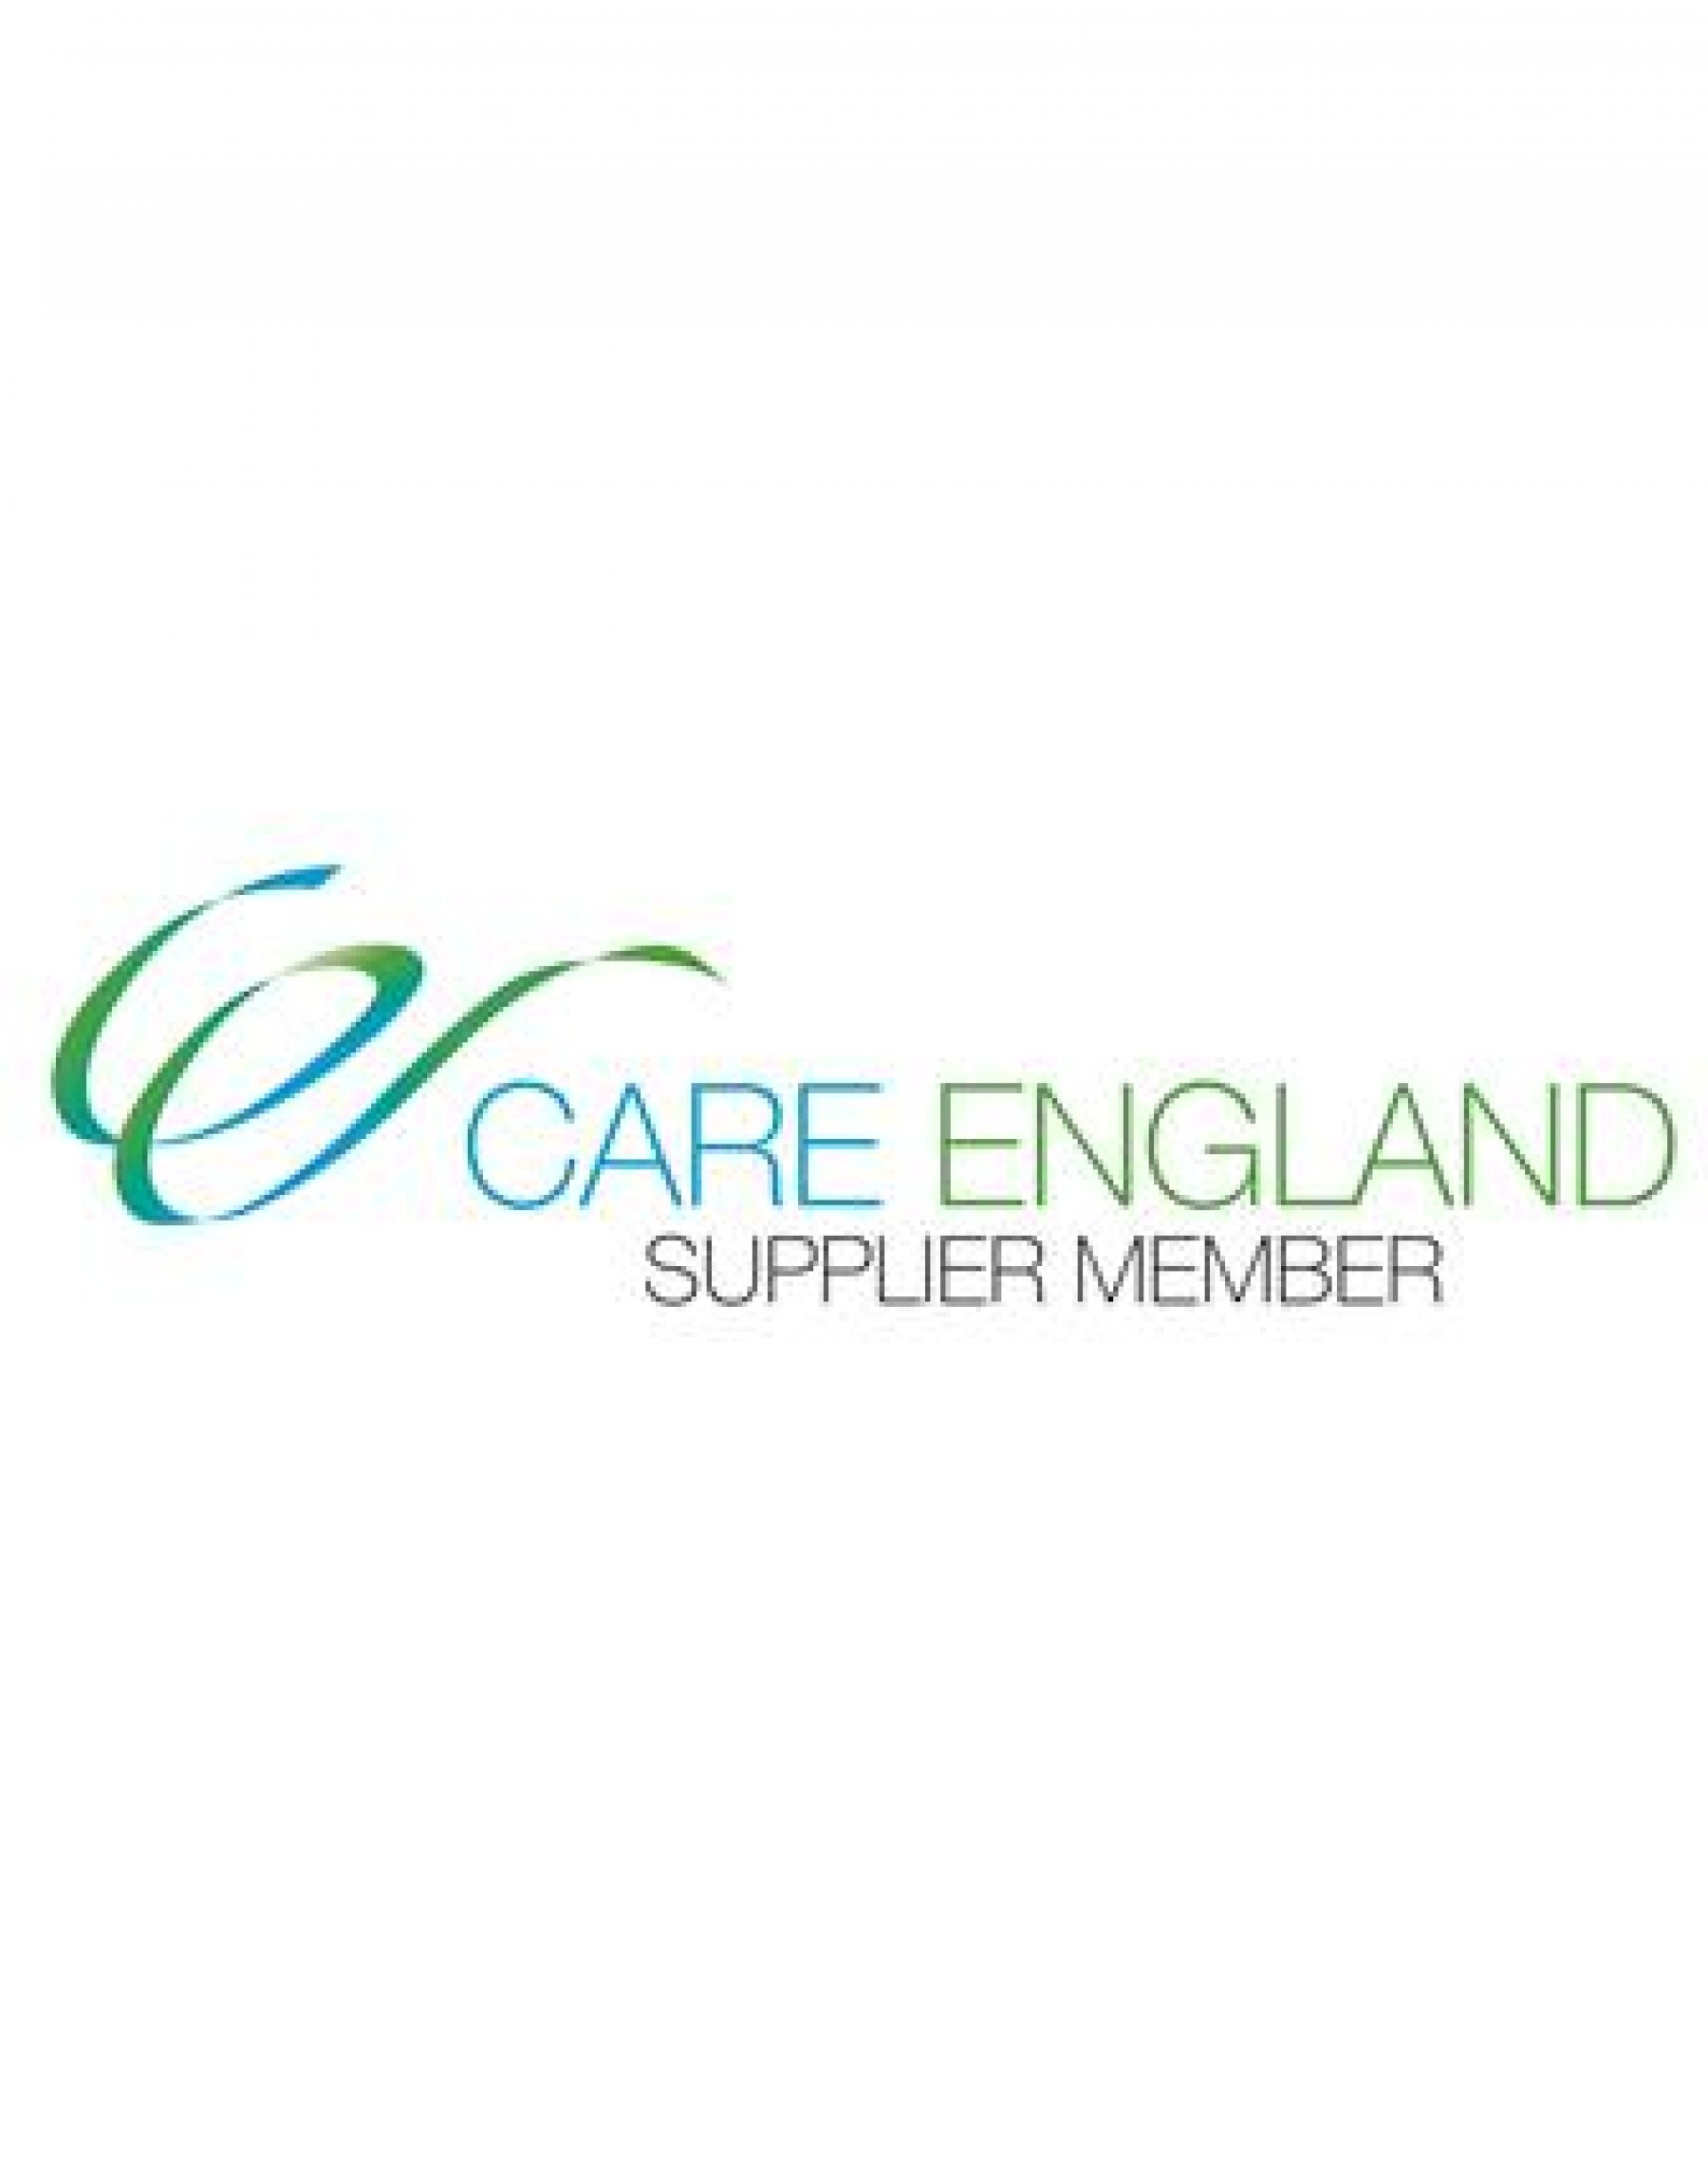 Care England Supplier Member